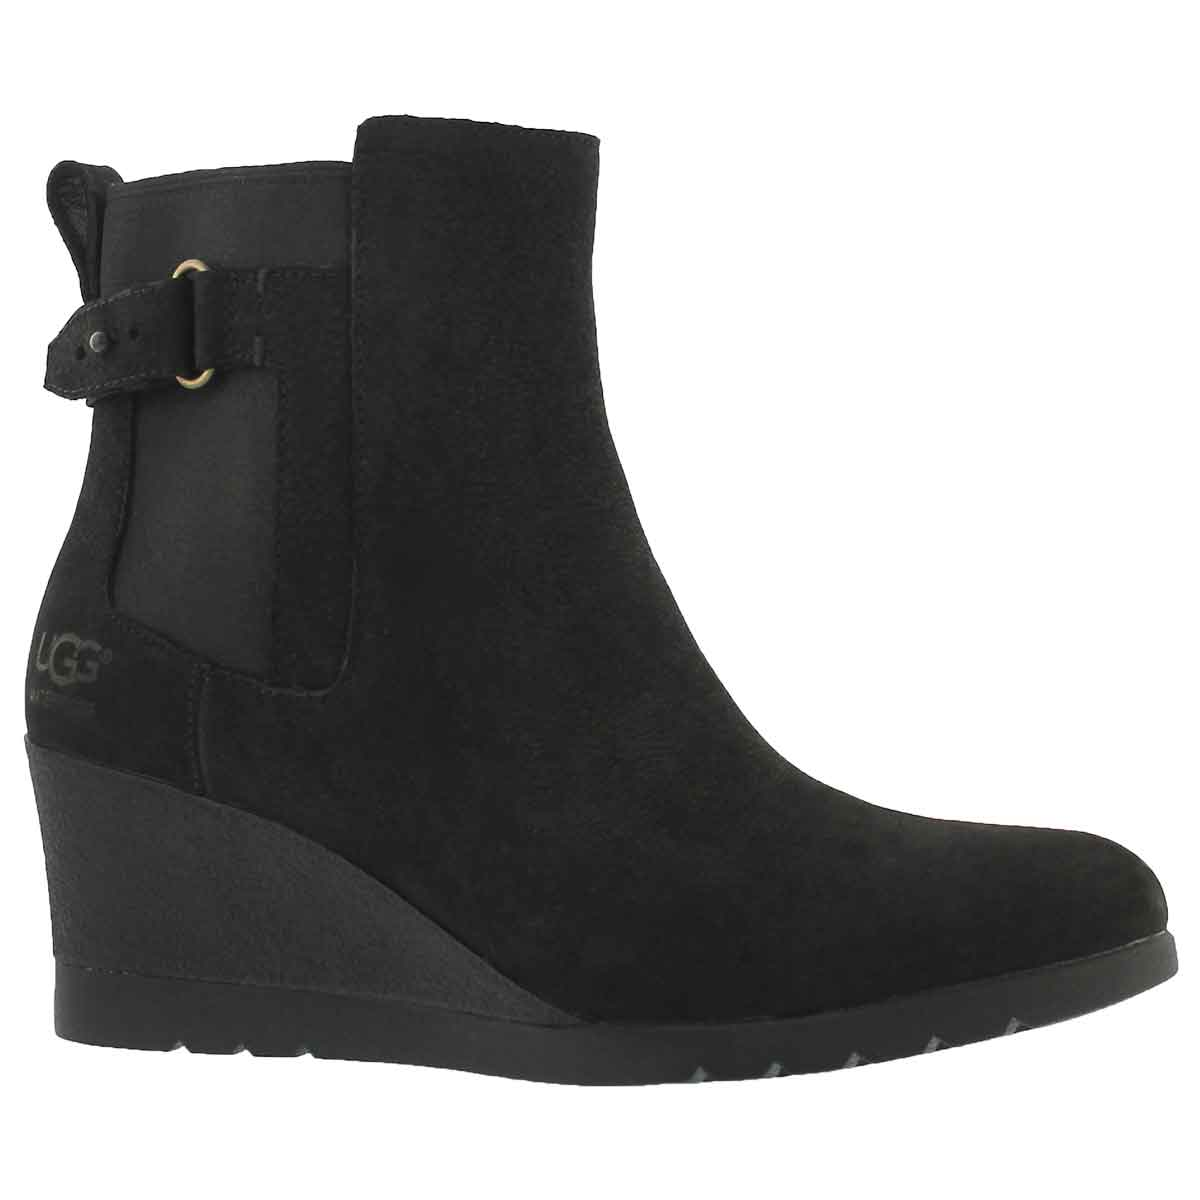 Women's INDRA black waterproof wedge ankle boots